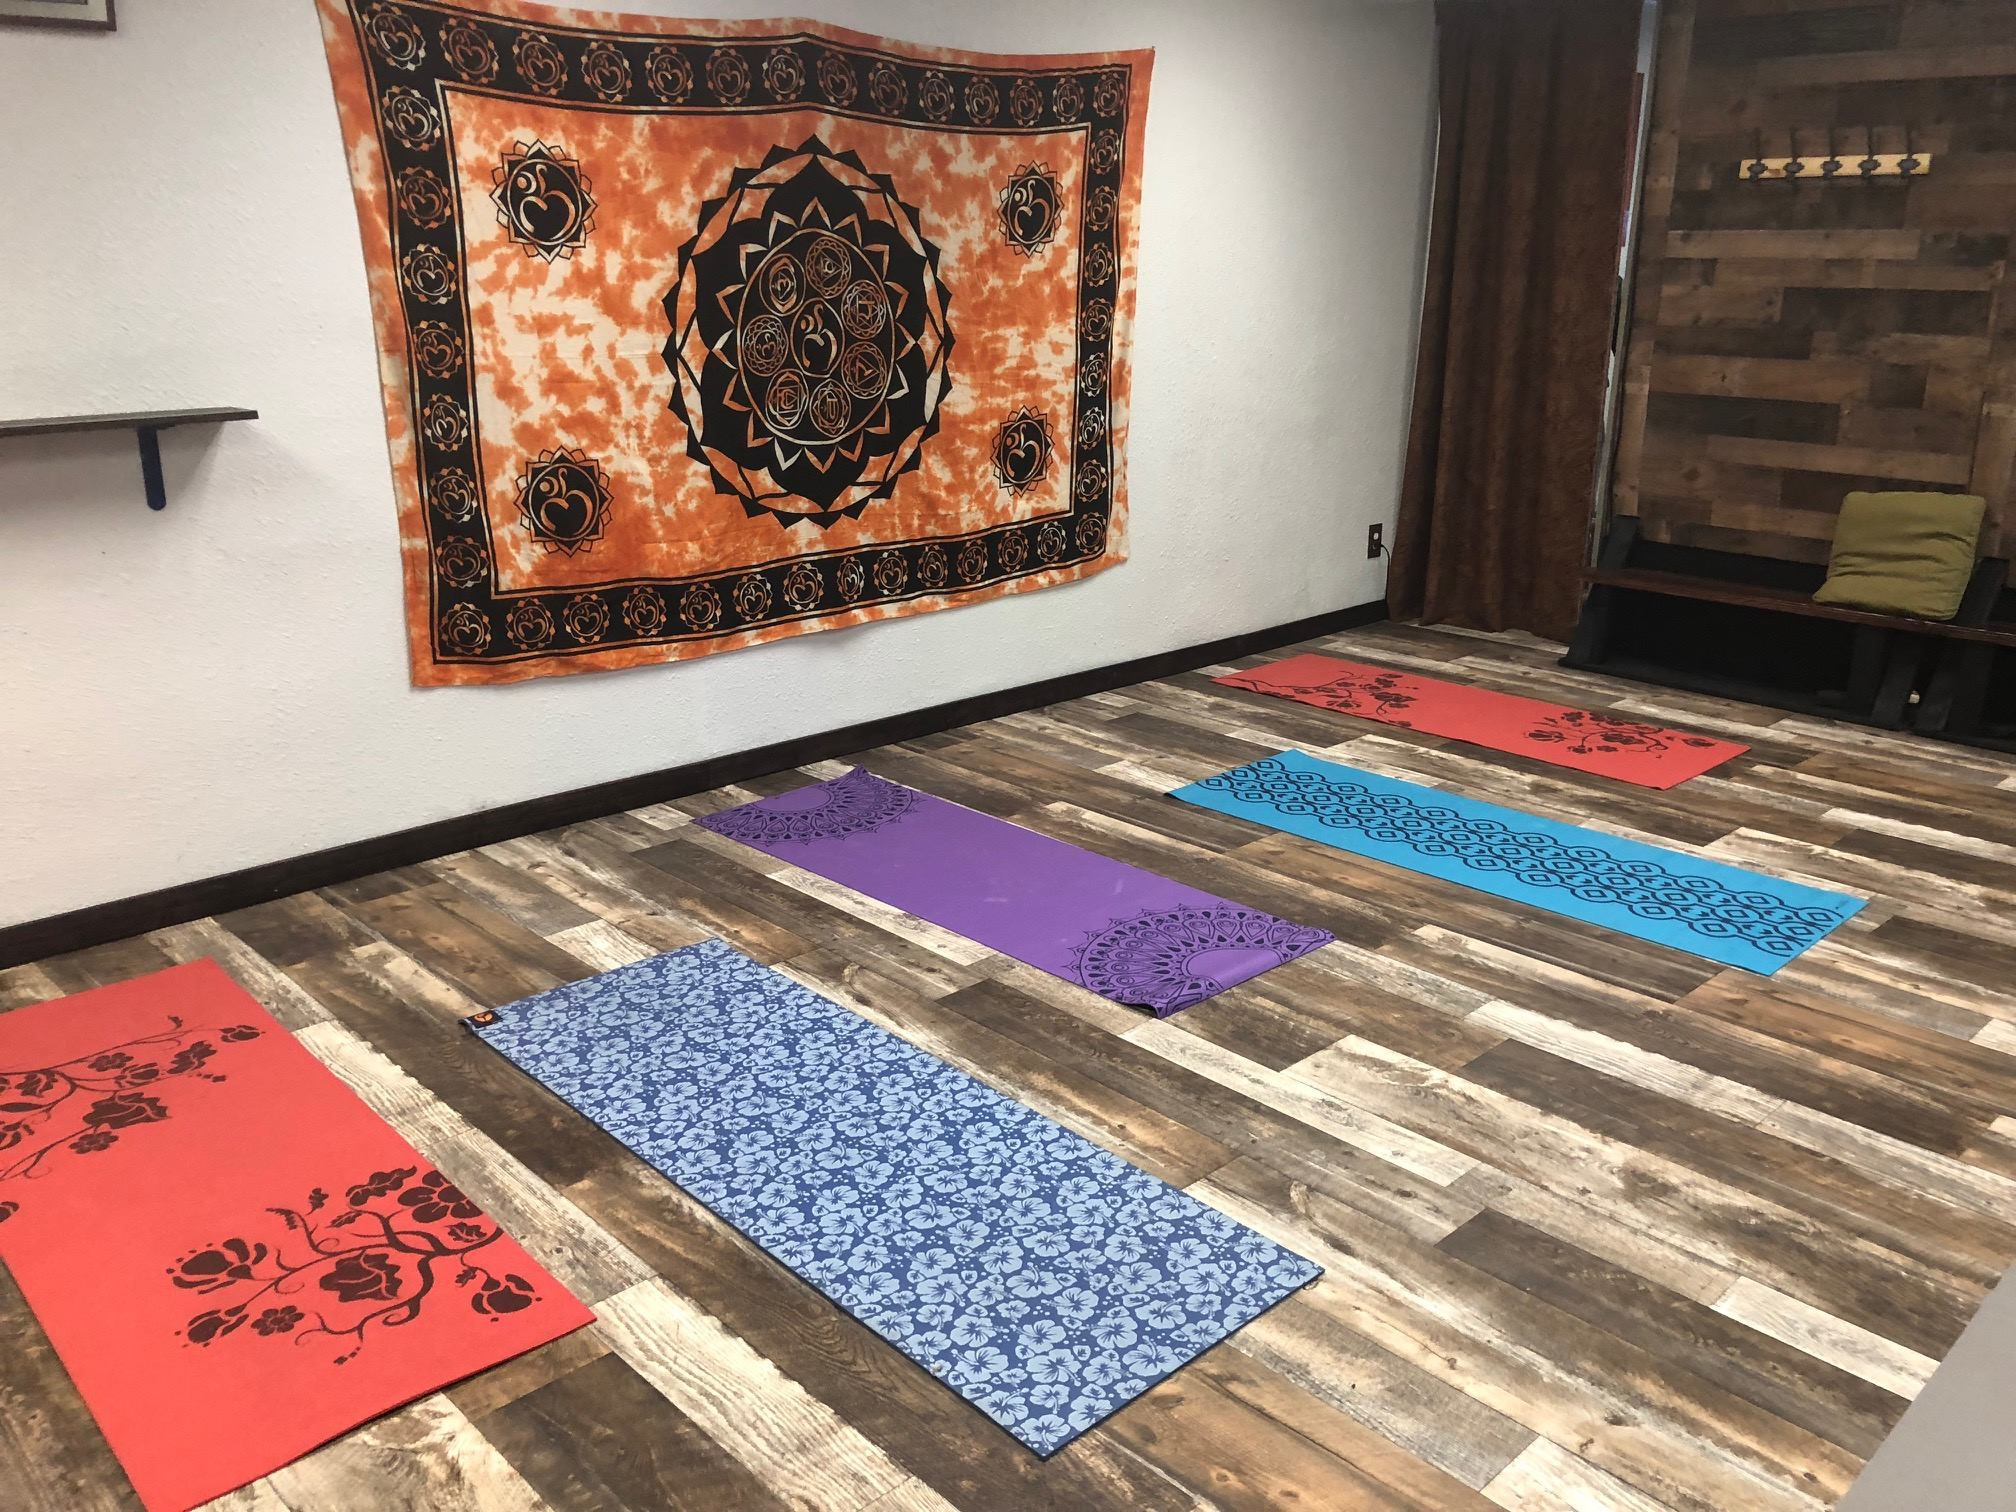 hardwood flooring installation kansas city of gentle yoga flow mystic wellness kc kansas city from 11 for gentle yoga flow mystic wellness kc kansas city from 11 september to 30 october